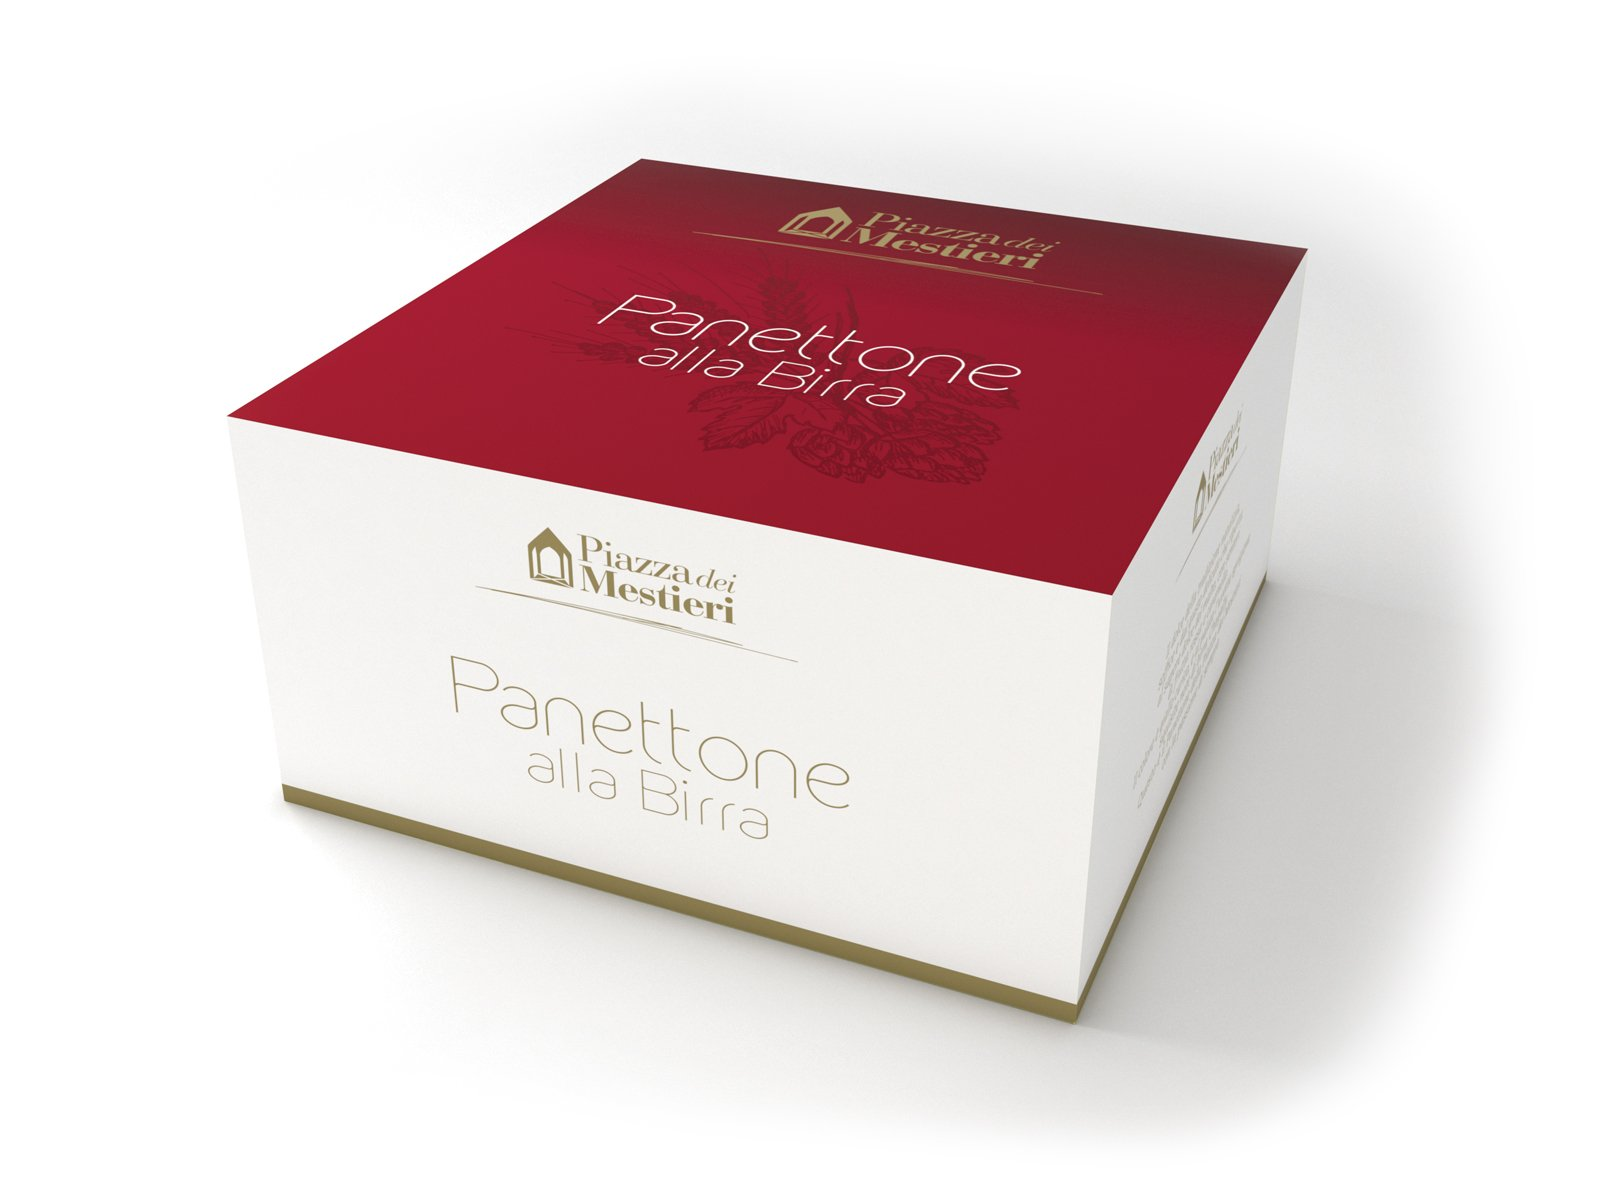 panettone craft beer artisan